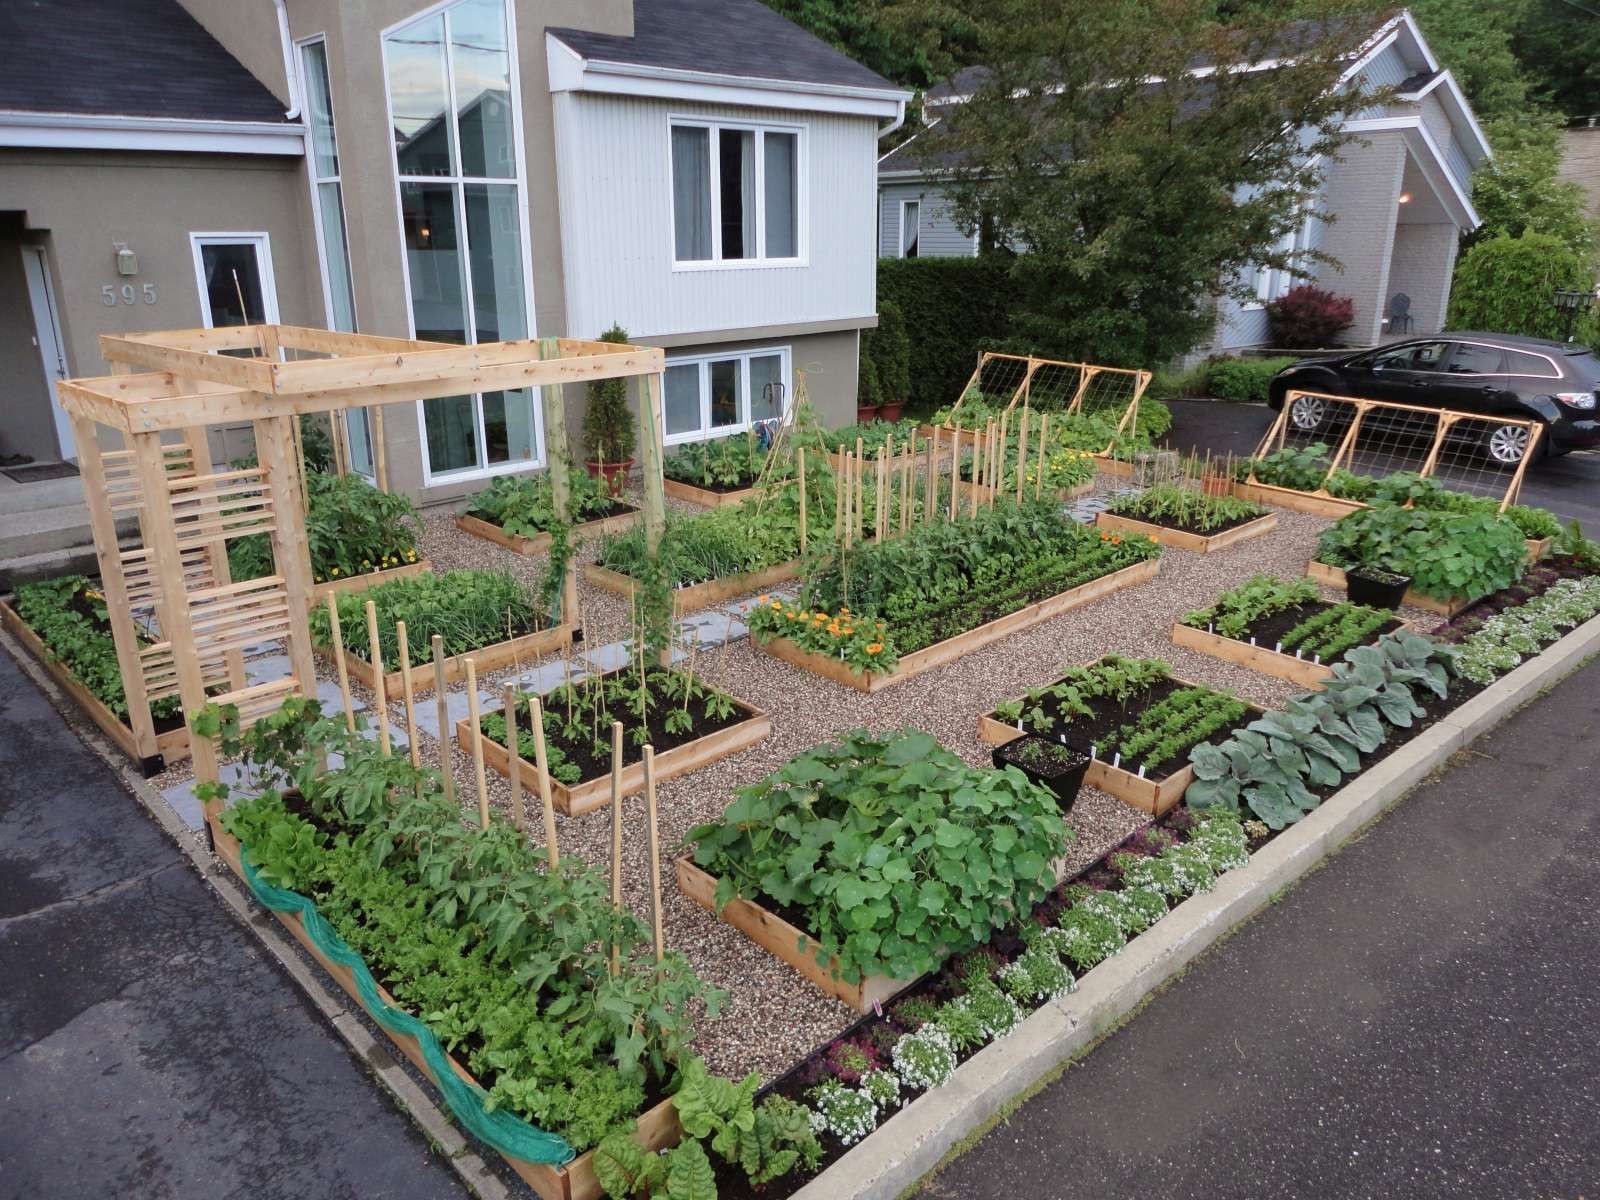 Container Vegetable Garden Ideas cool container vegetable gardening ideas modest ideas container vegetable garden Find This Pin And More On Garden Backyard Garden Design Ideas With Front Yard Vegetable Garden